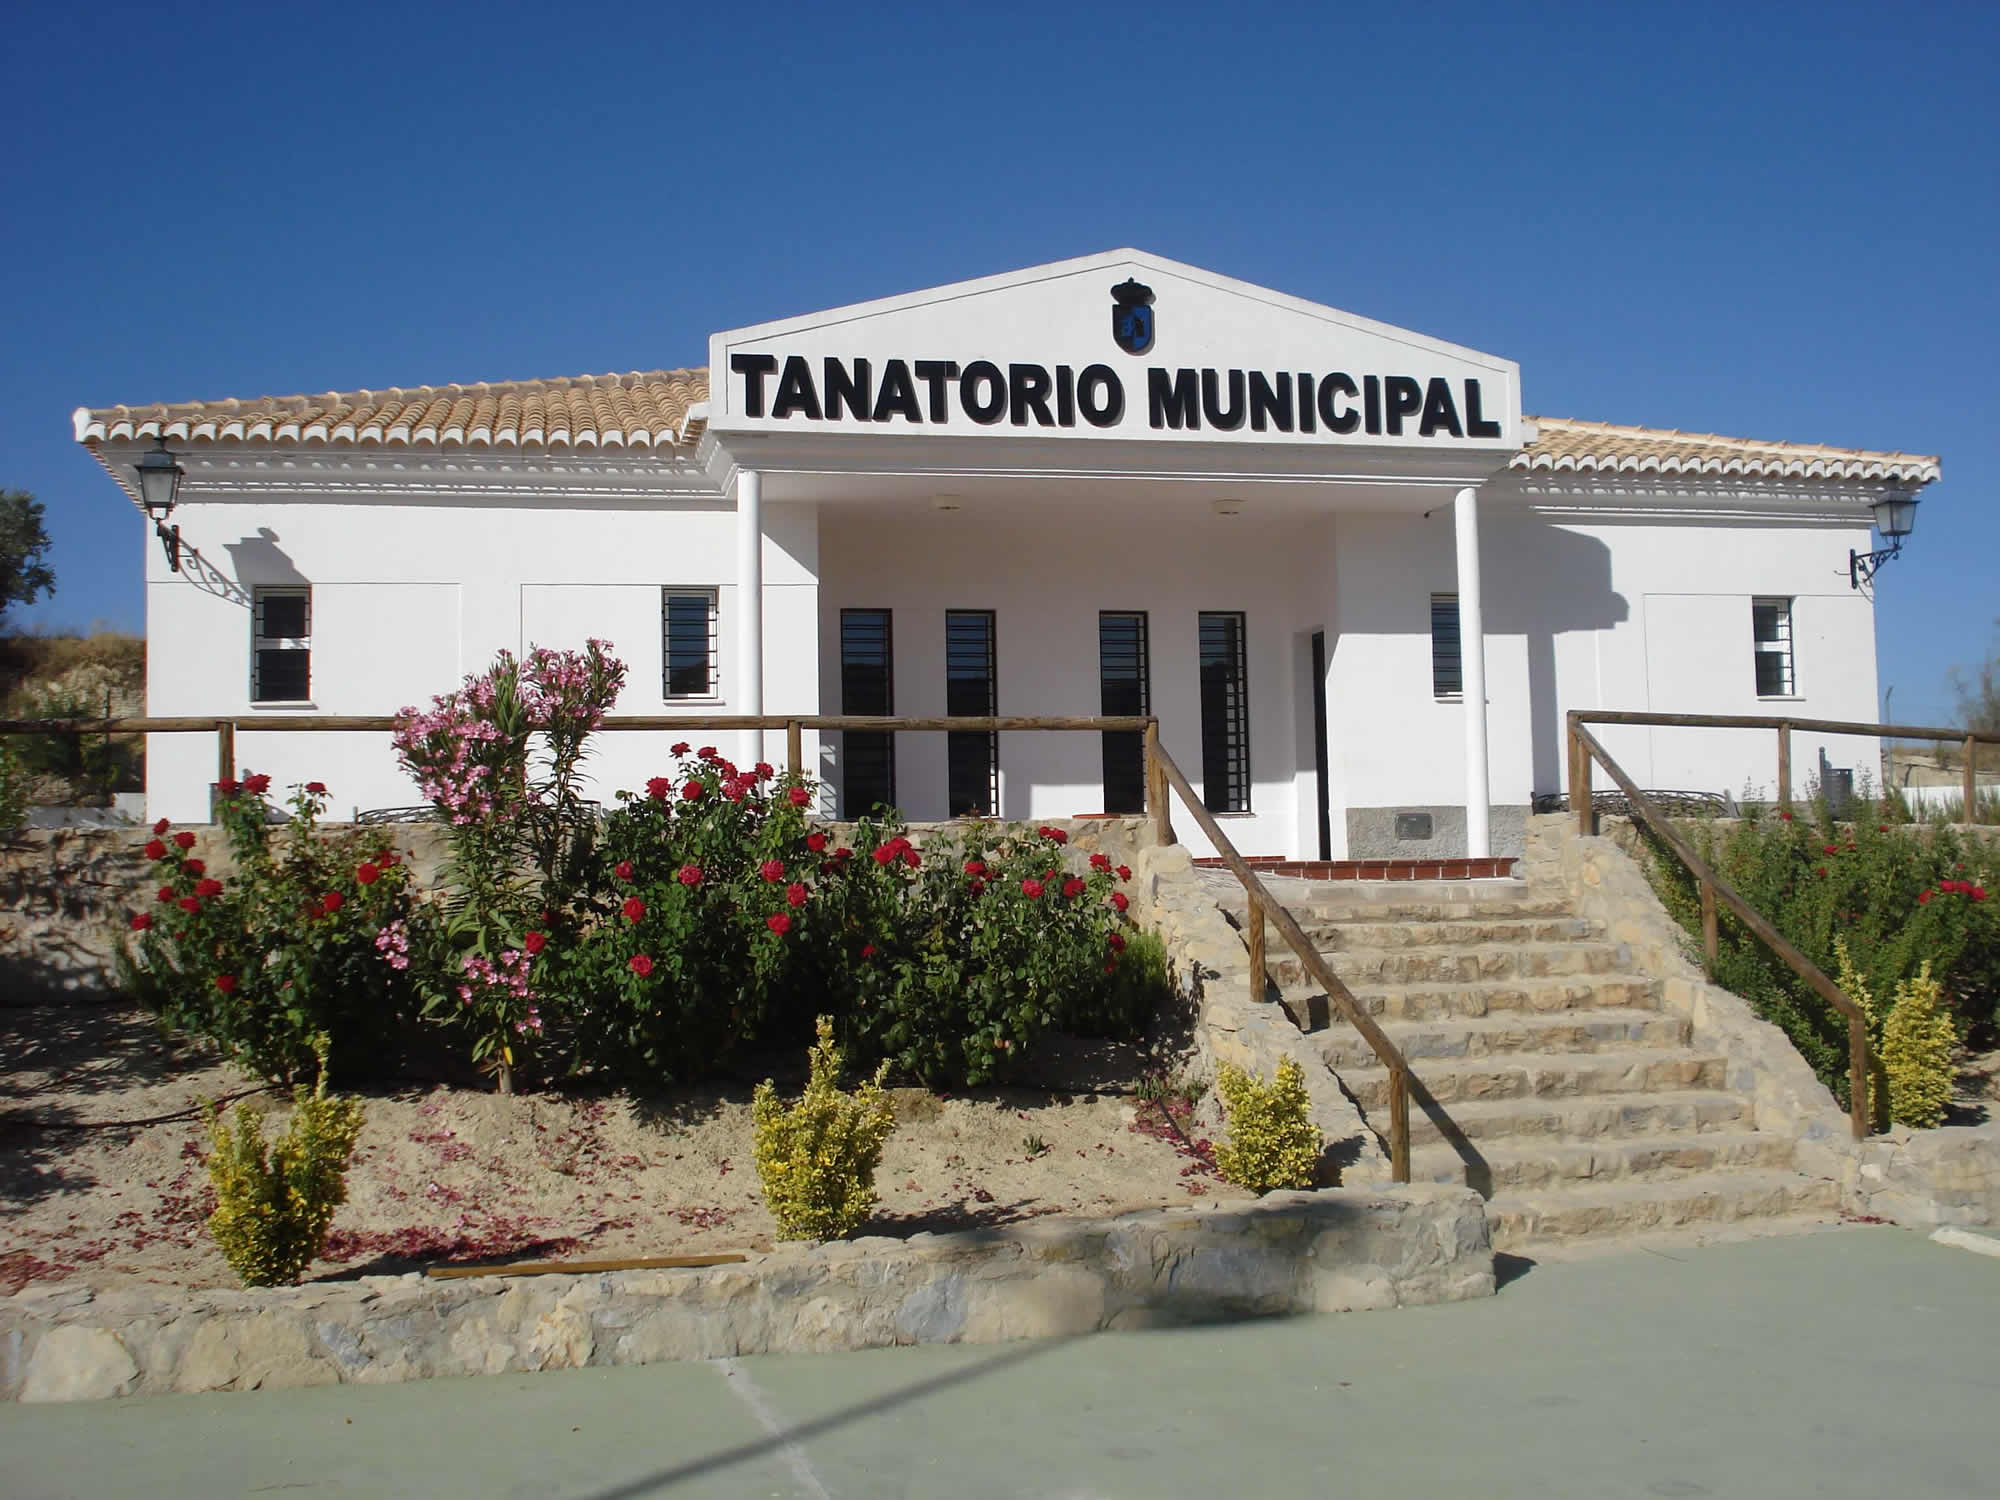 Tanatorio Municipal de Algarinejo